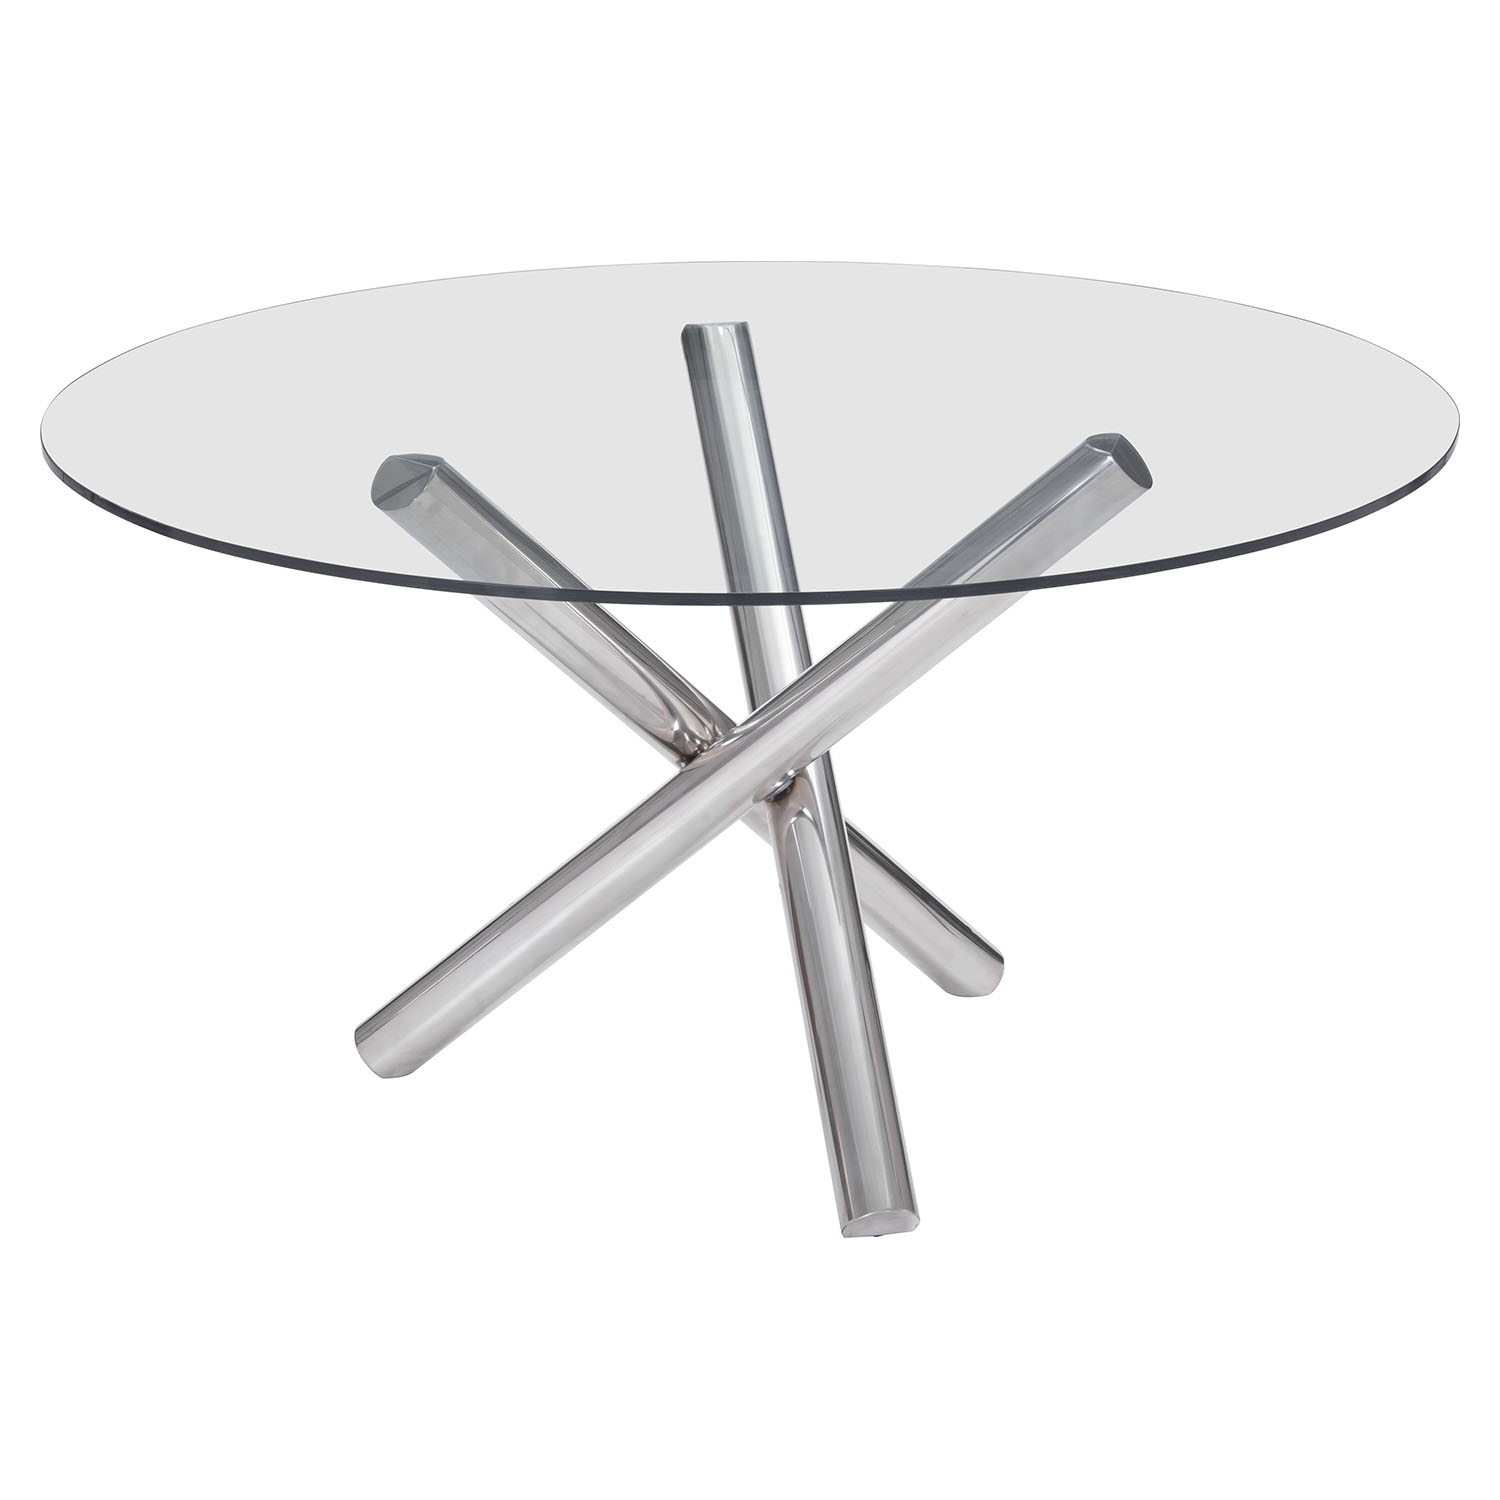 Stant Round Dining Table - Chrome - ZM-100352